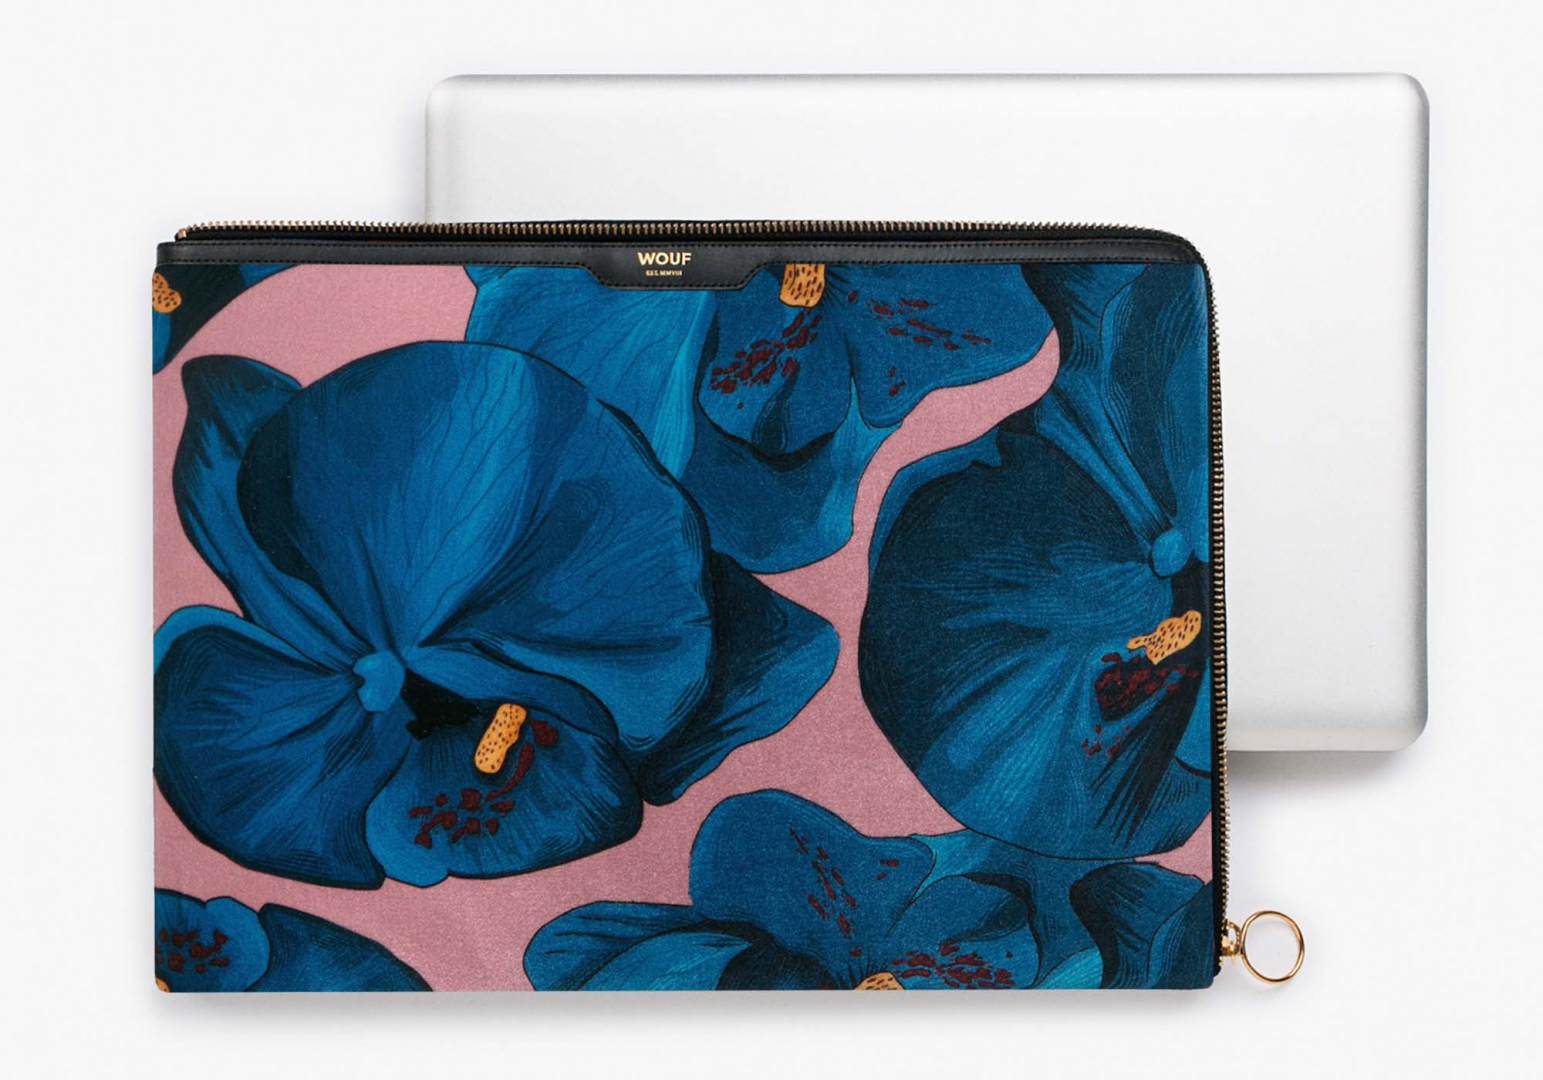 "Housse en velours Orchidée macbook 13"" - WOOUF"